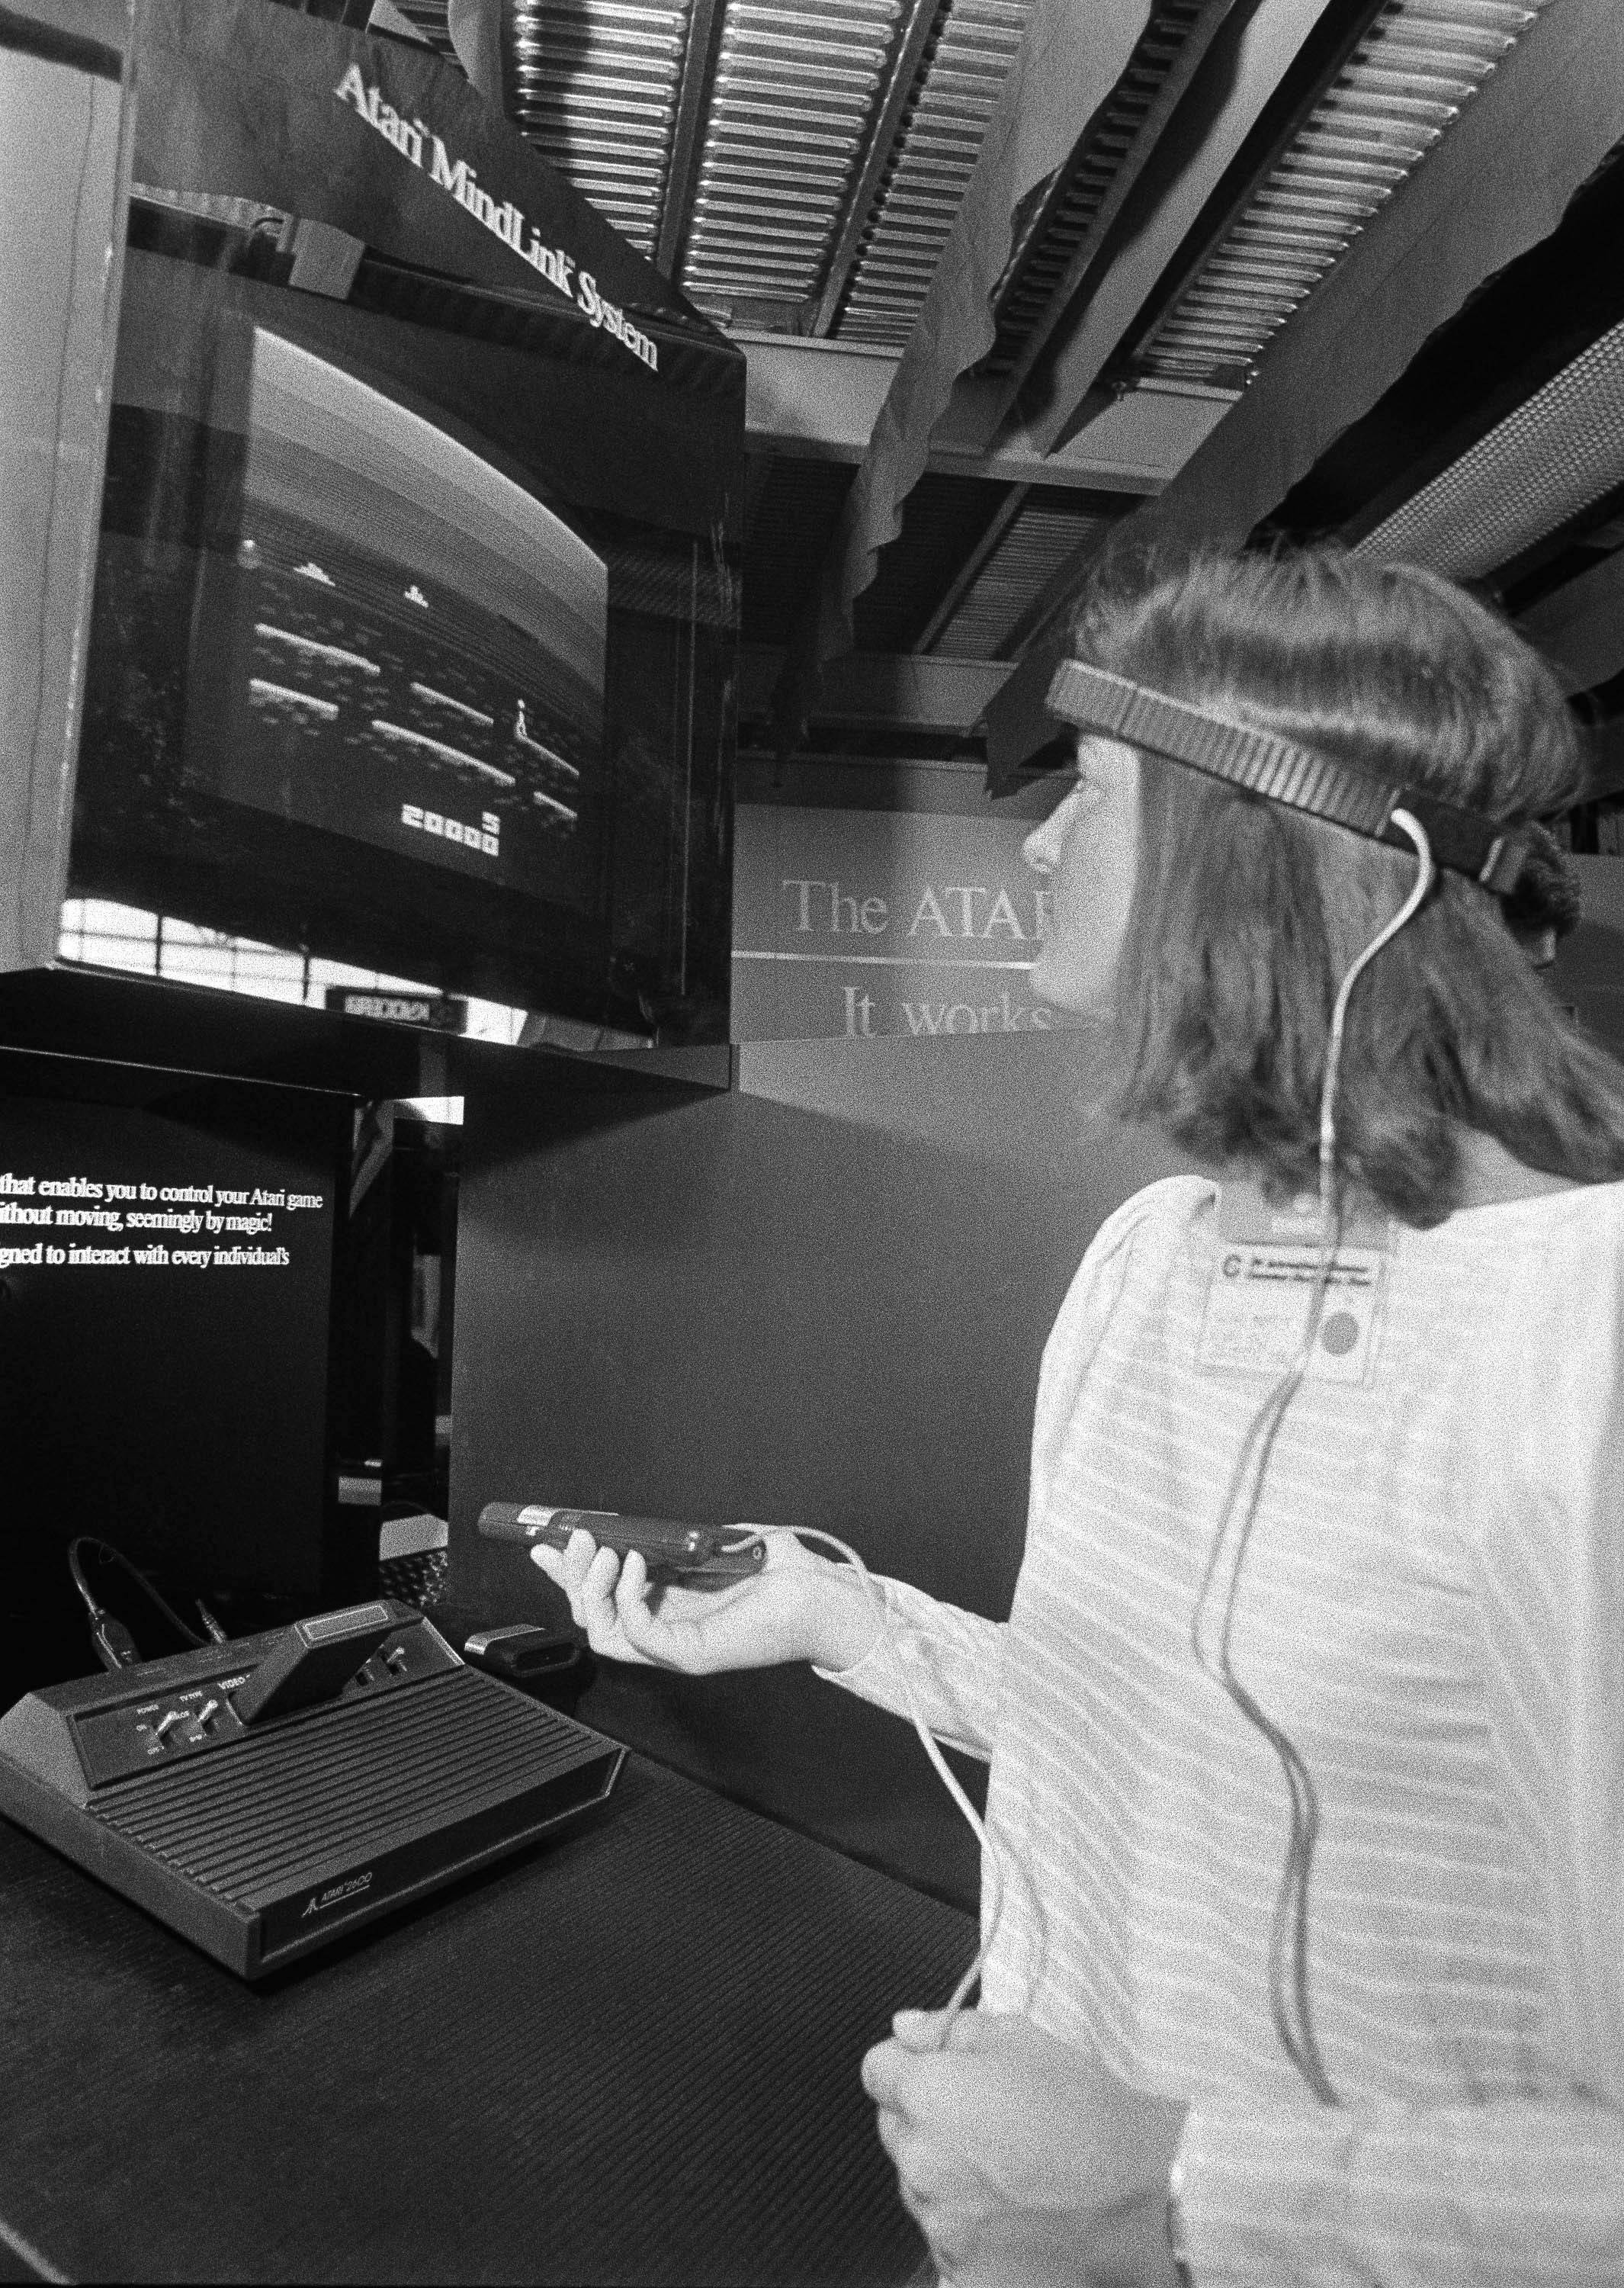 Associated Press/June 5, 1984 A woman in Chicago demonstrates Atari's new game, Mind Link, which utilizes a headband that picks up electrical impulse from the movement of the forehead and transmits them to a receiver attached to a video game or home computer console.